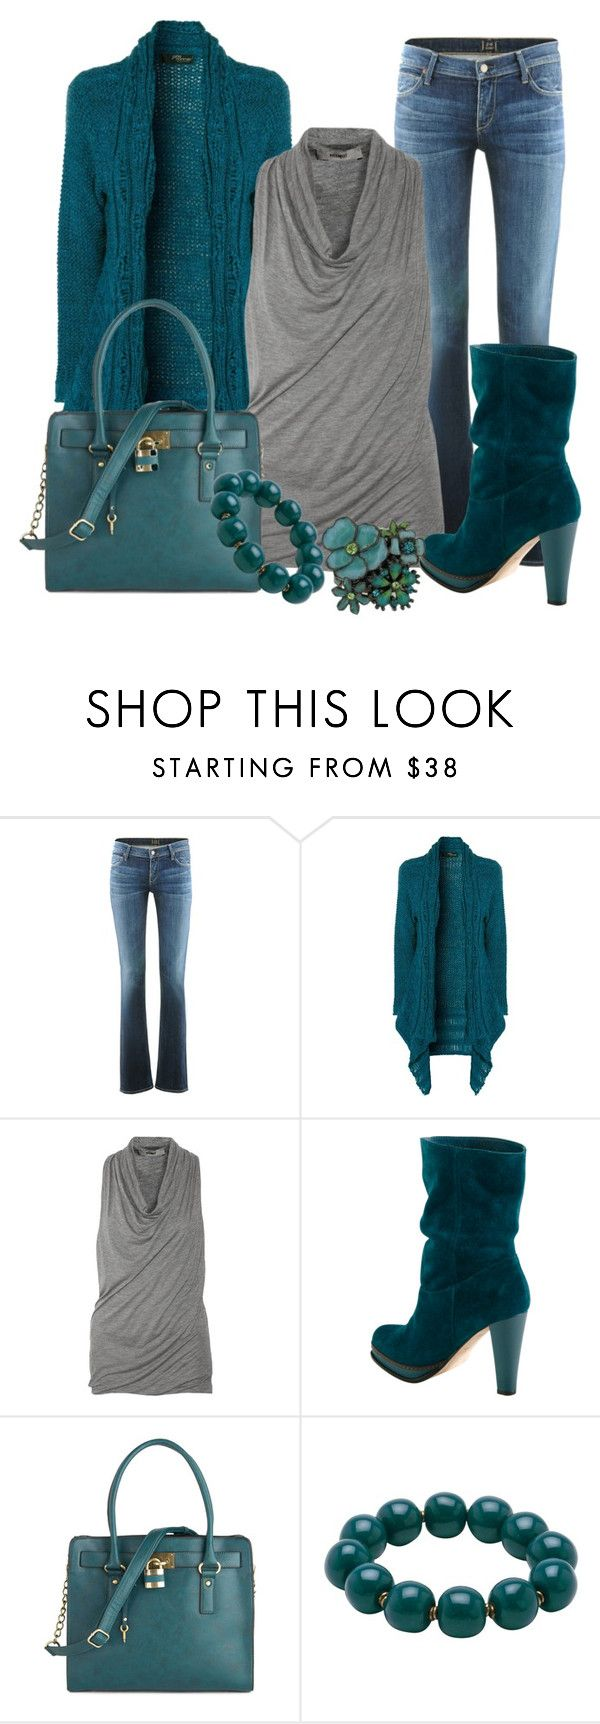 """""""Teal with Gray"""" by lisamoran ❤ liked on Polyvore featuring Citizens of Humanity, Jane Norman, Helmut Lang, Cole Haan, Melie Bianco, Kazuri and 1928"""